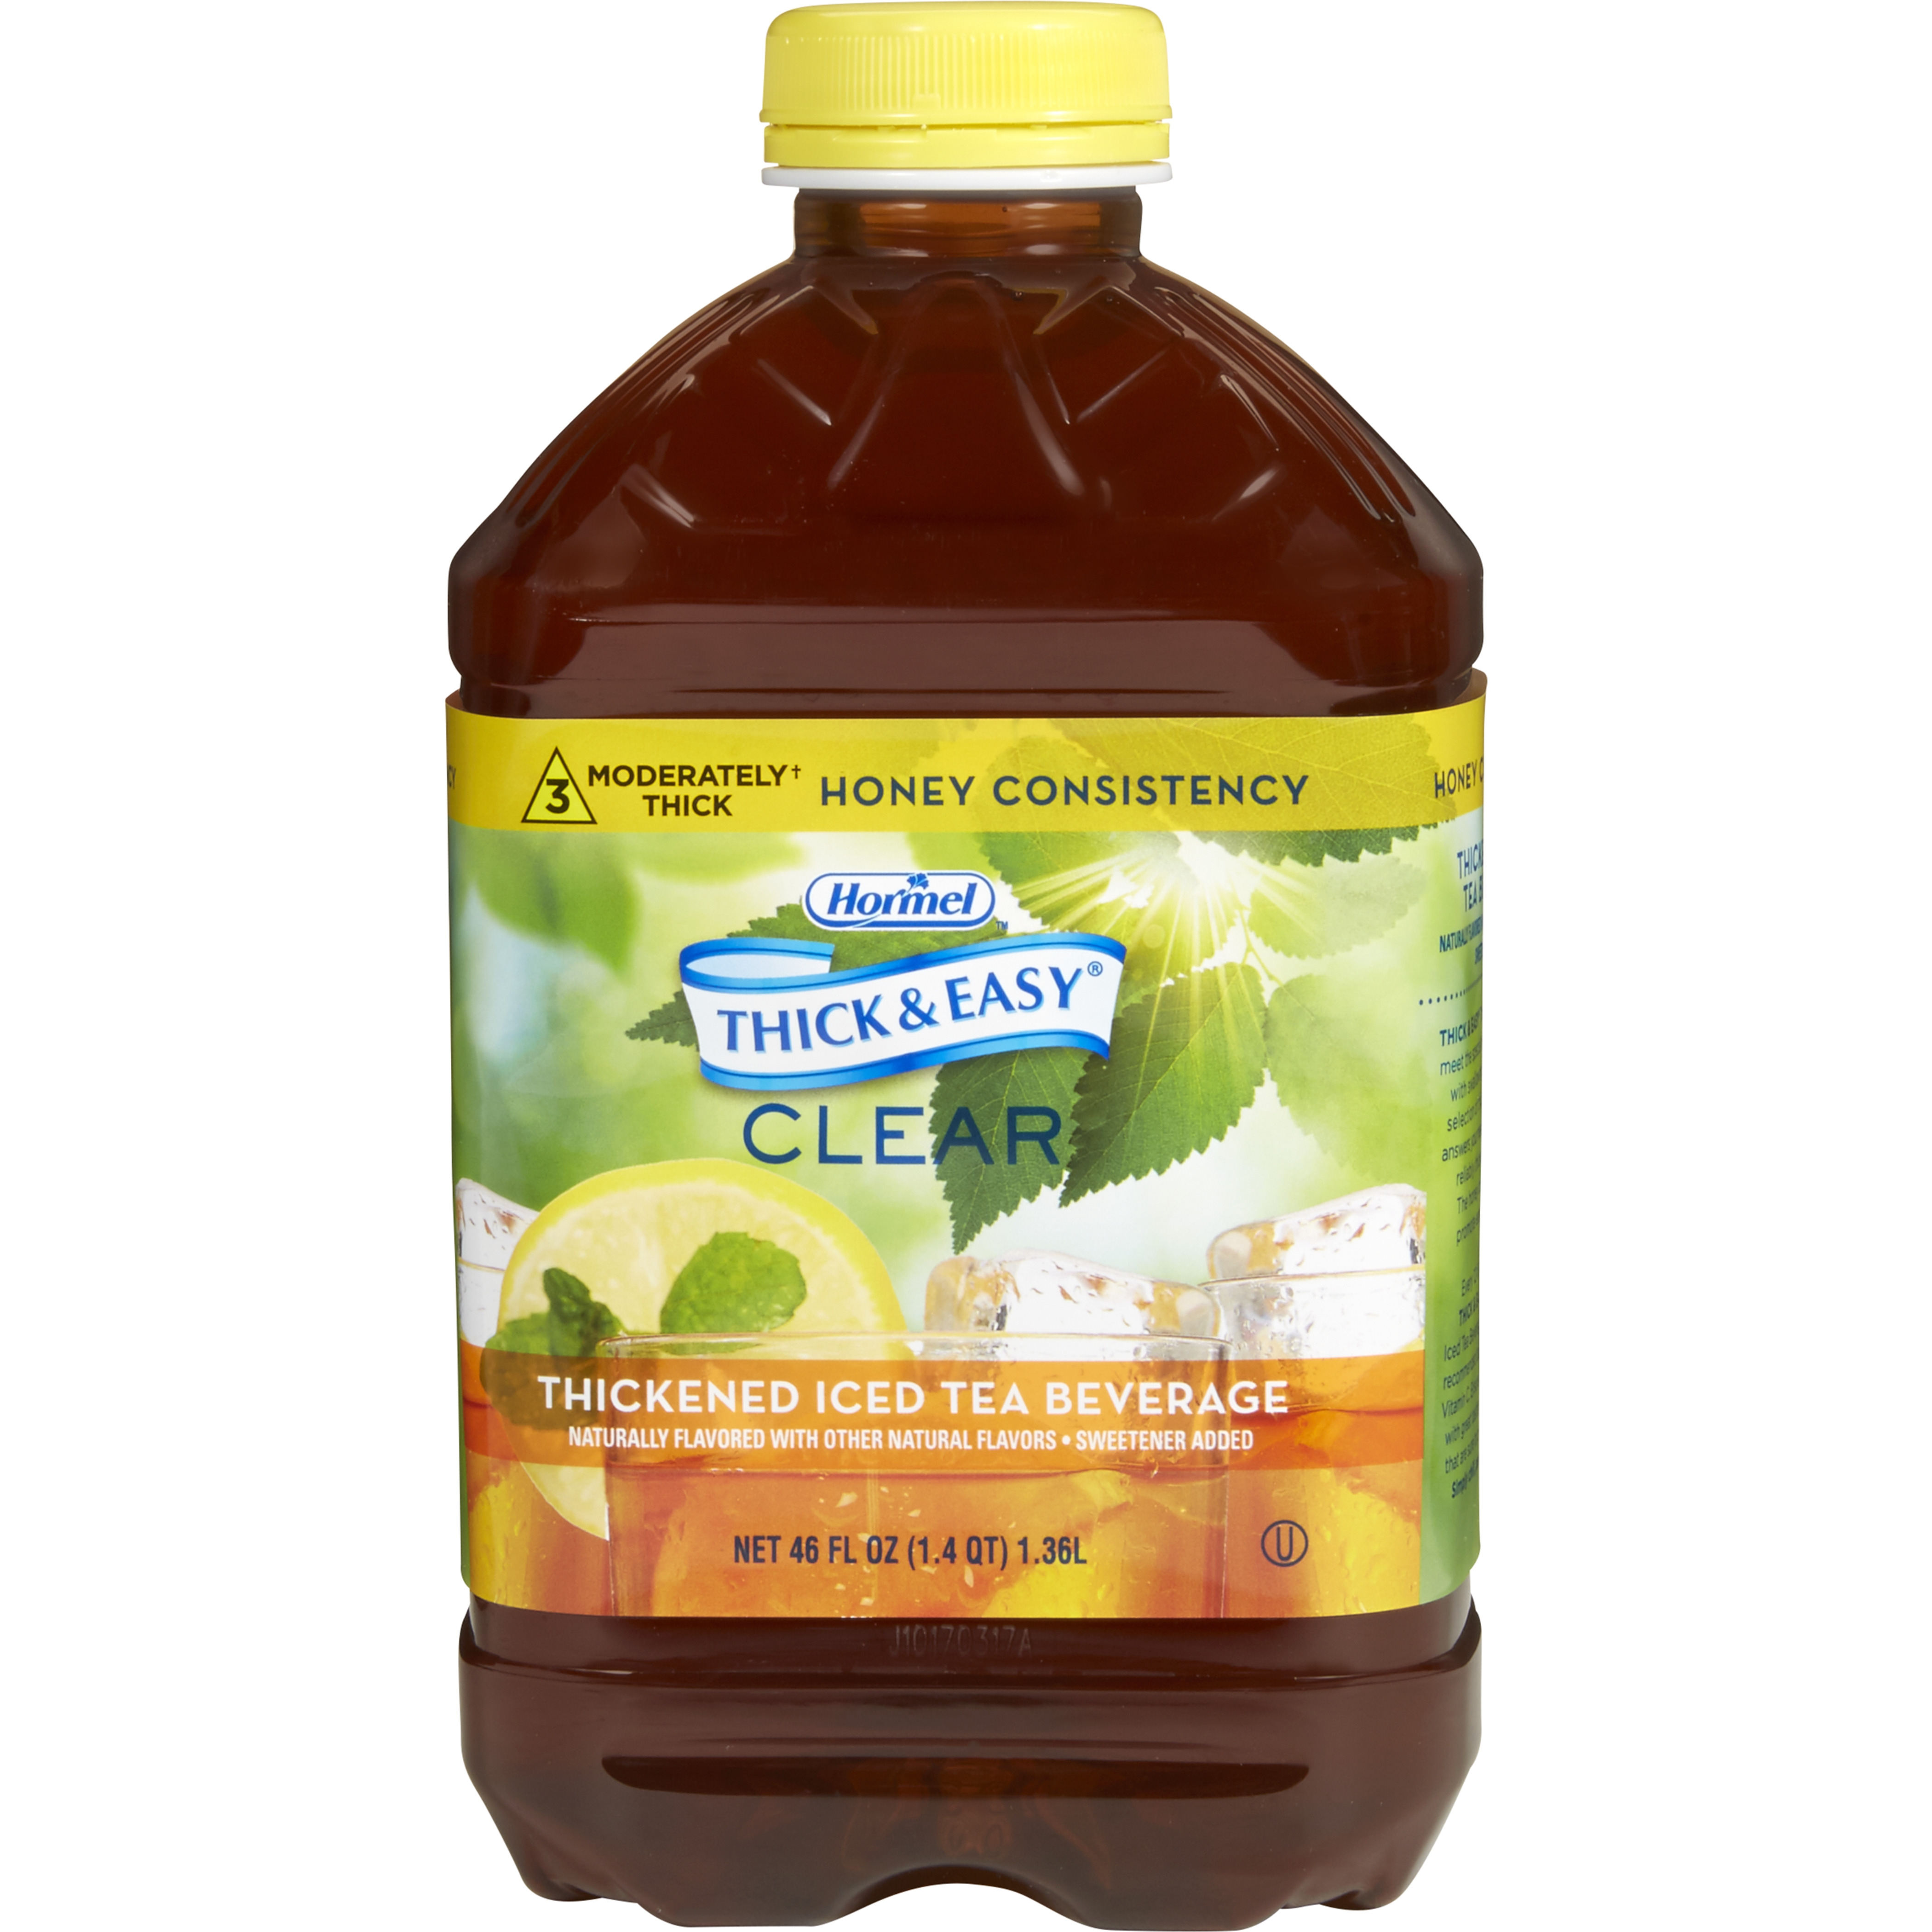 Hormel Thick & Easy Clear Thickened Beverage, Honey Consistency, Moderately Thick, Iced Tea, 46 oz., 45587, Case of 6